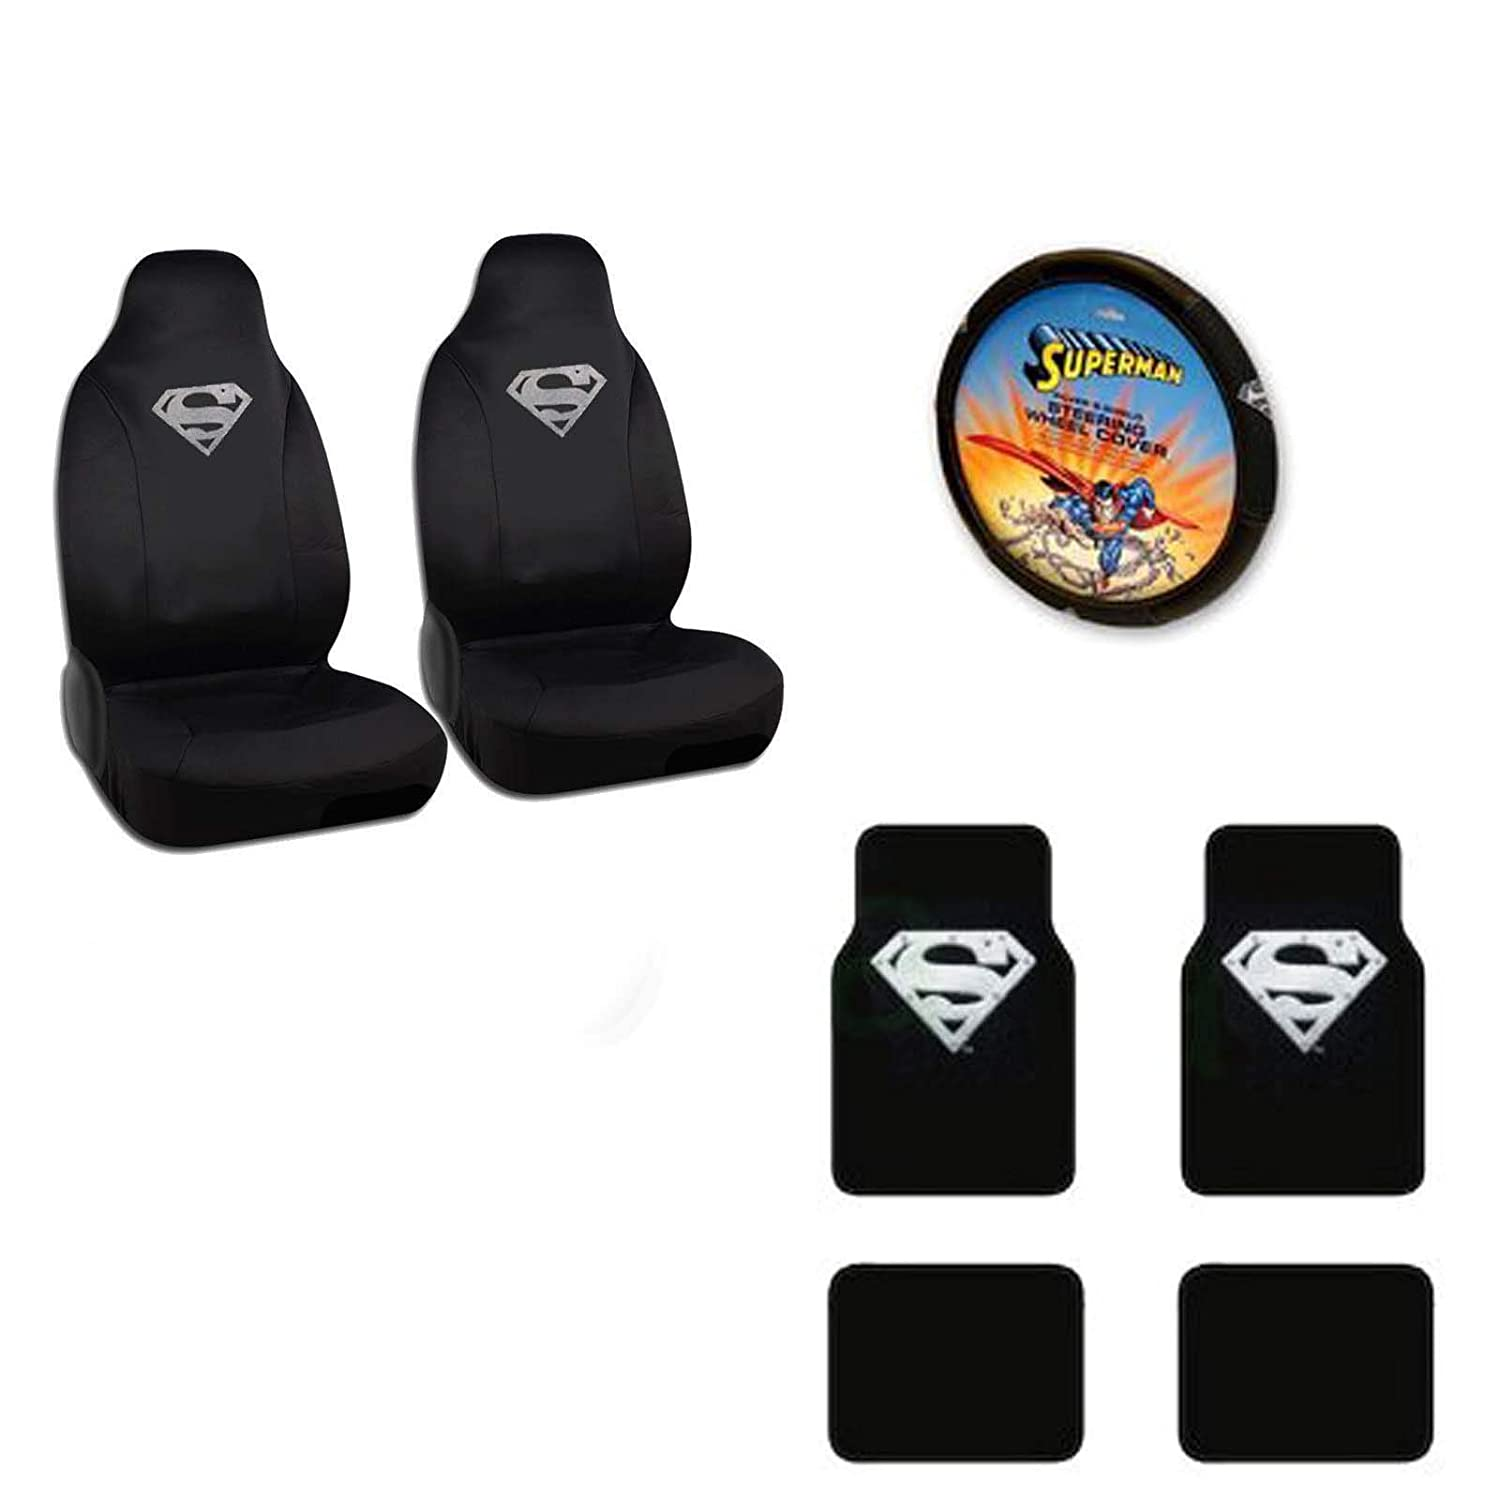 Superman A set of 7 Piece Automotive Gift Set: A Pair of High Back Seat Covers 2 Front and 2 Rear Floor Mats and 1 Wheel Cover